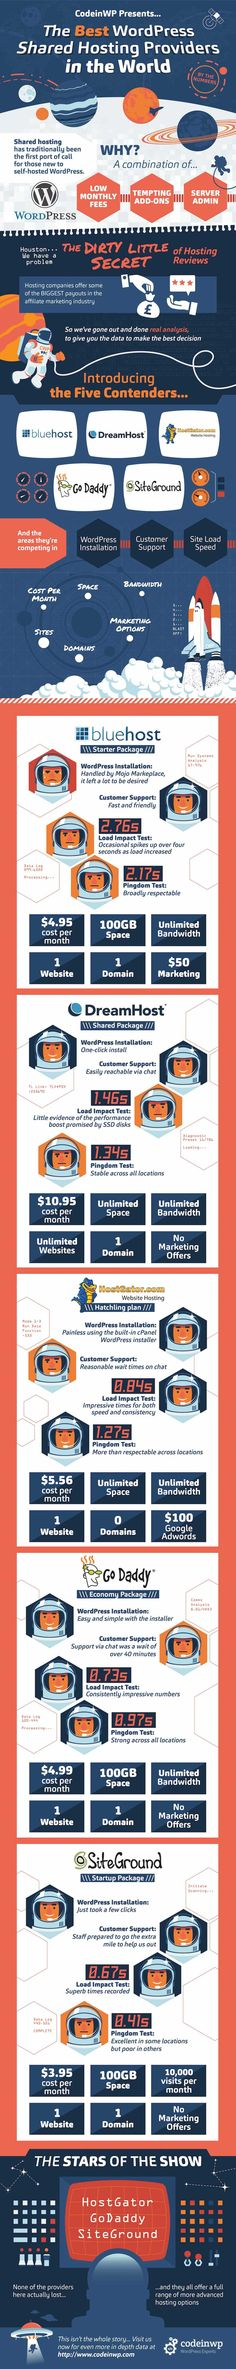 This is an infographic reviewing and comparing some of the top shared hosting providers for WordPress.